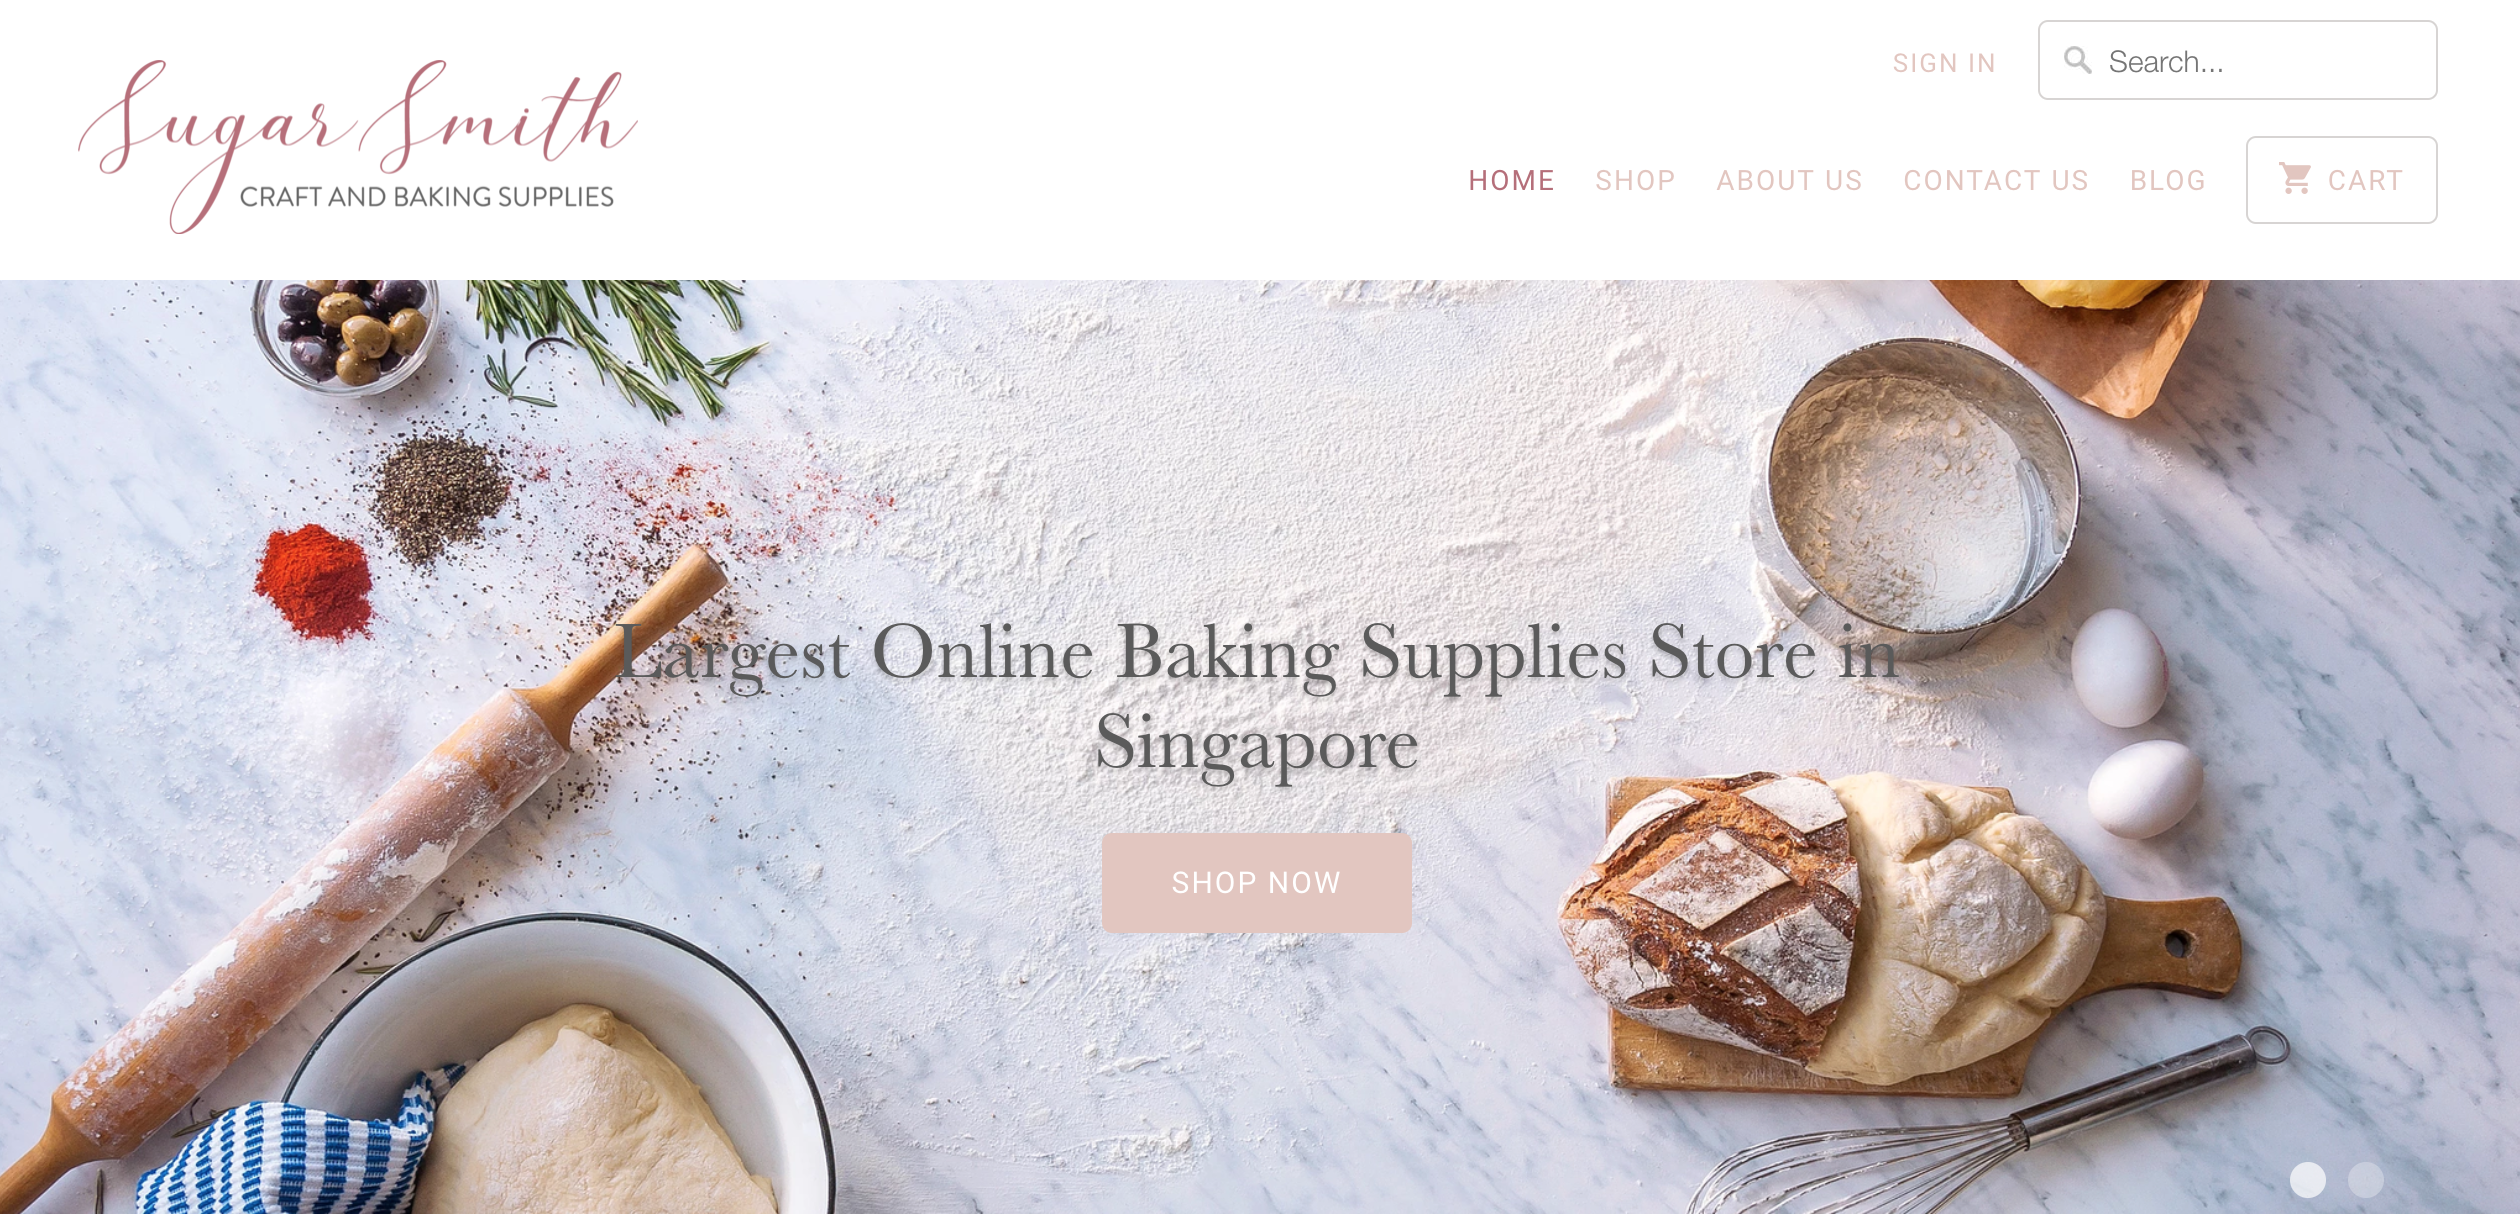 5 Baking Supplies Store in Singapore